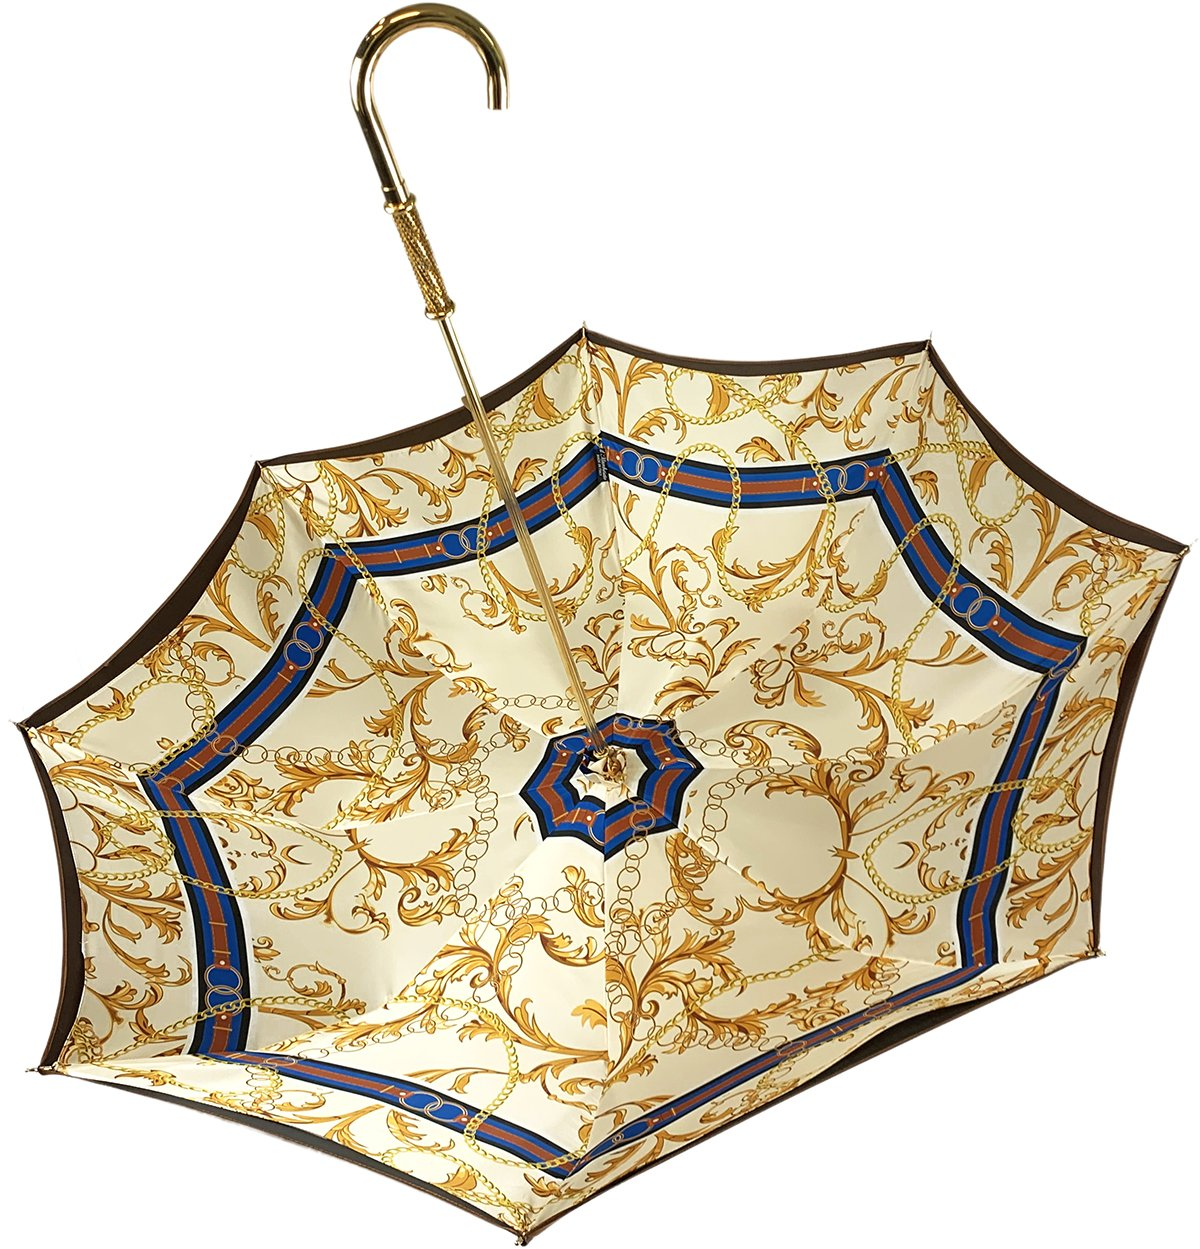 Superb Bronze Color Umbrella With Chains Pattern - IL MARCHESATO LUXURY UMBRELLAS, CANES AND SHOEHORNS